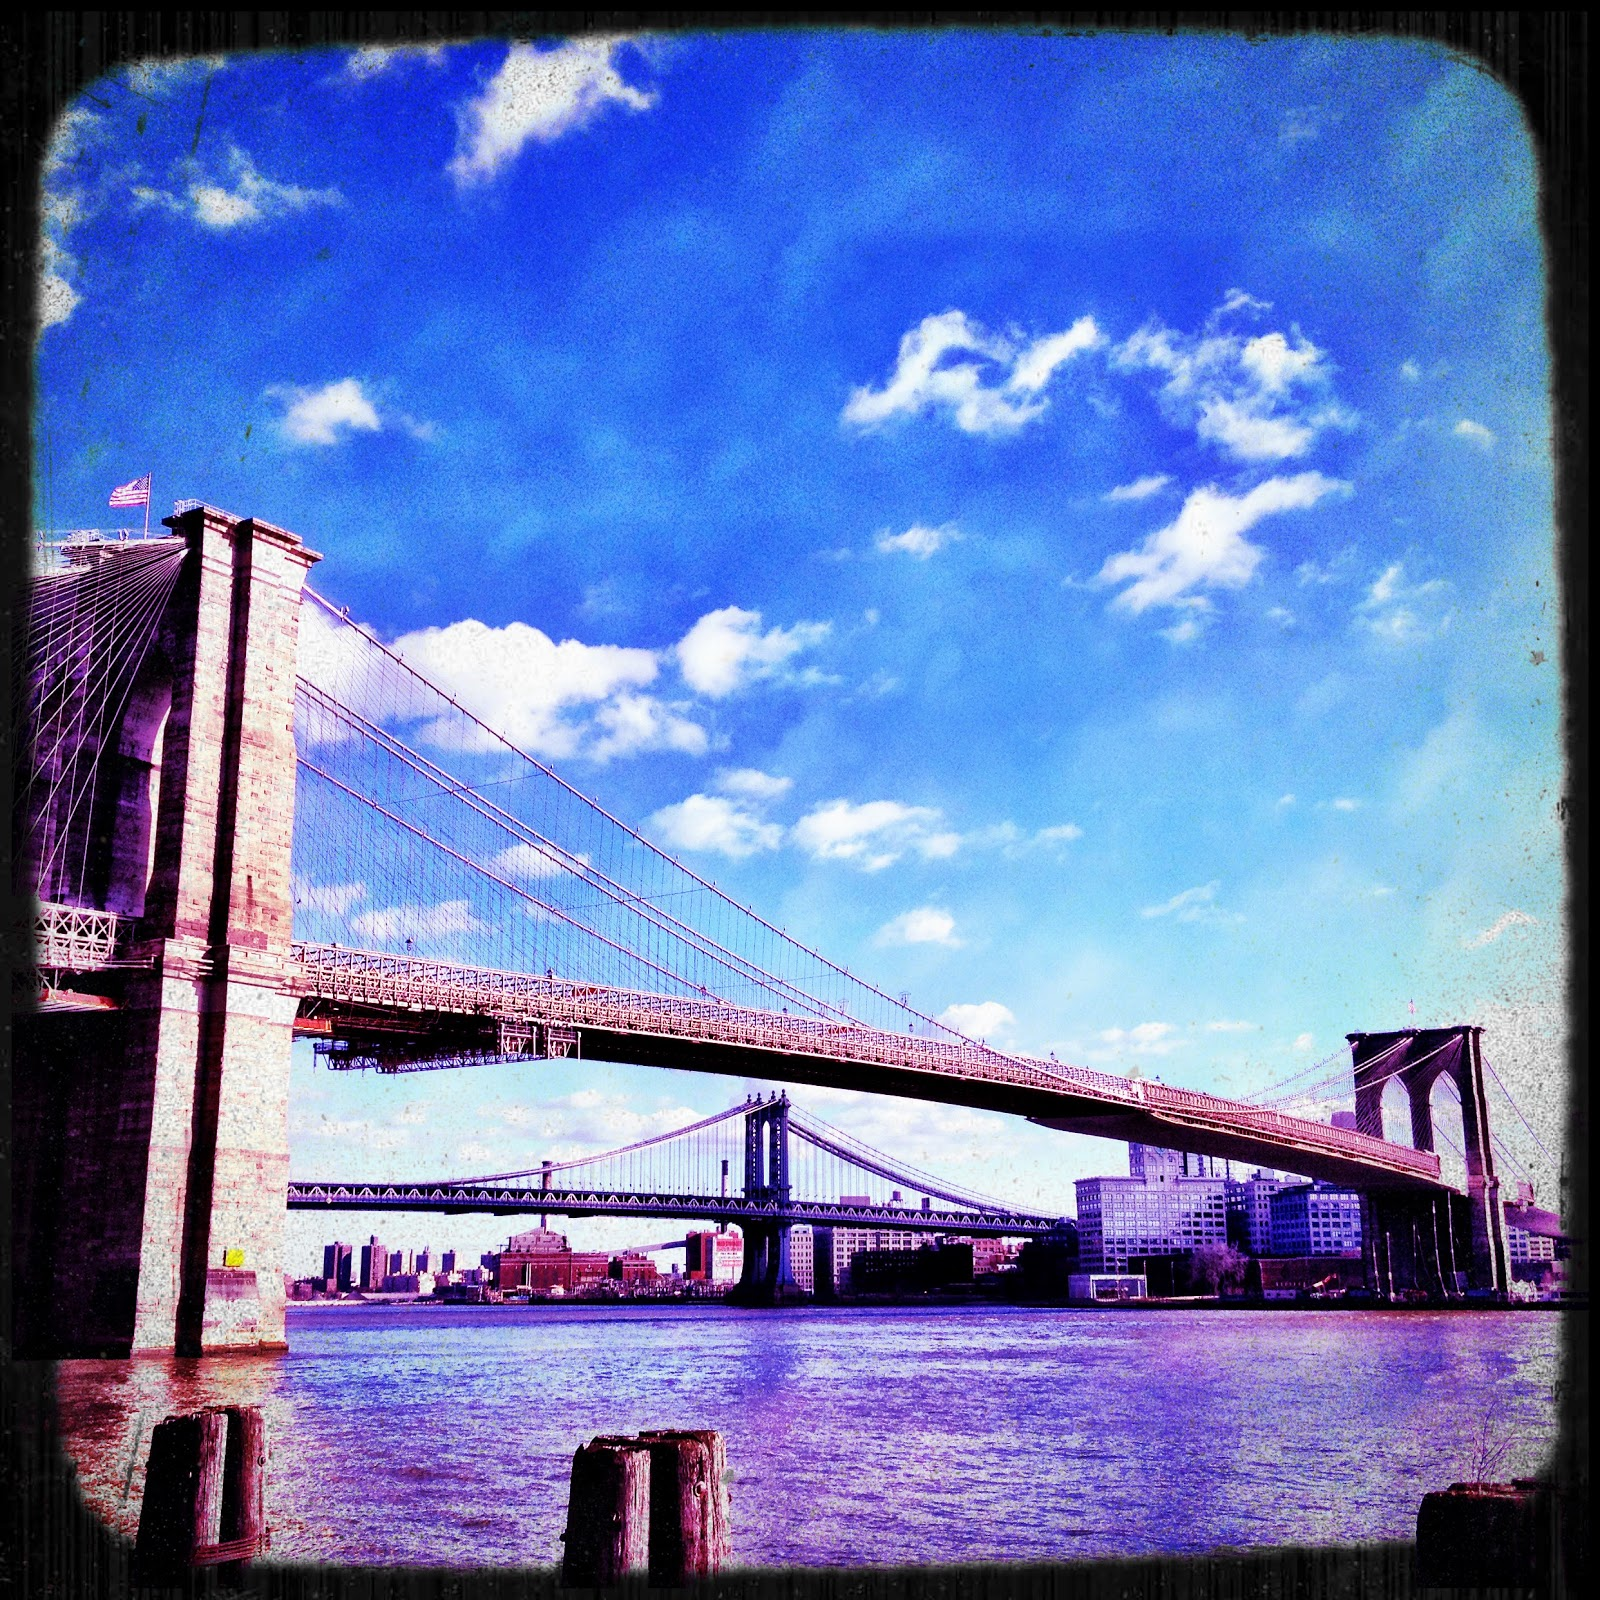 View of the Brooklyn Bridge, New York. Taken using Camera+